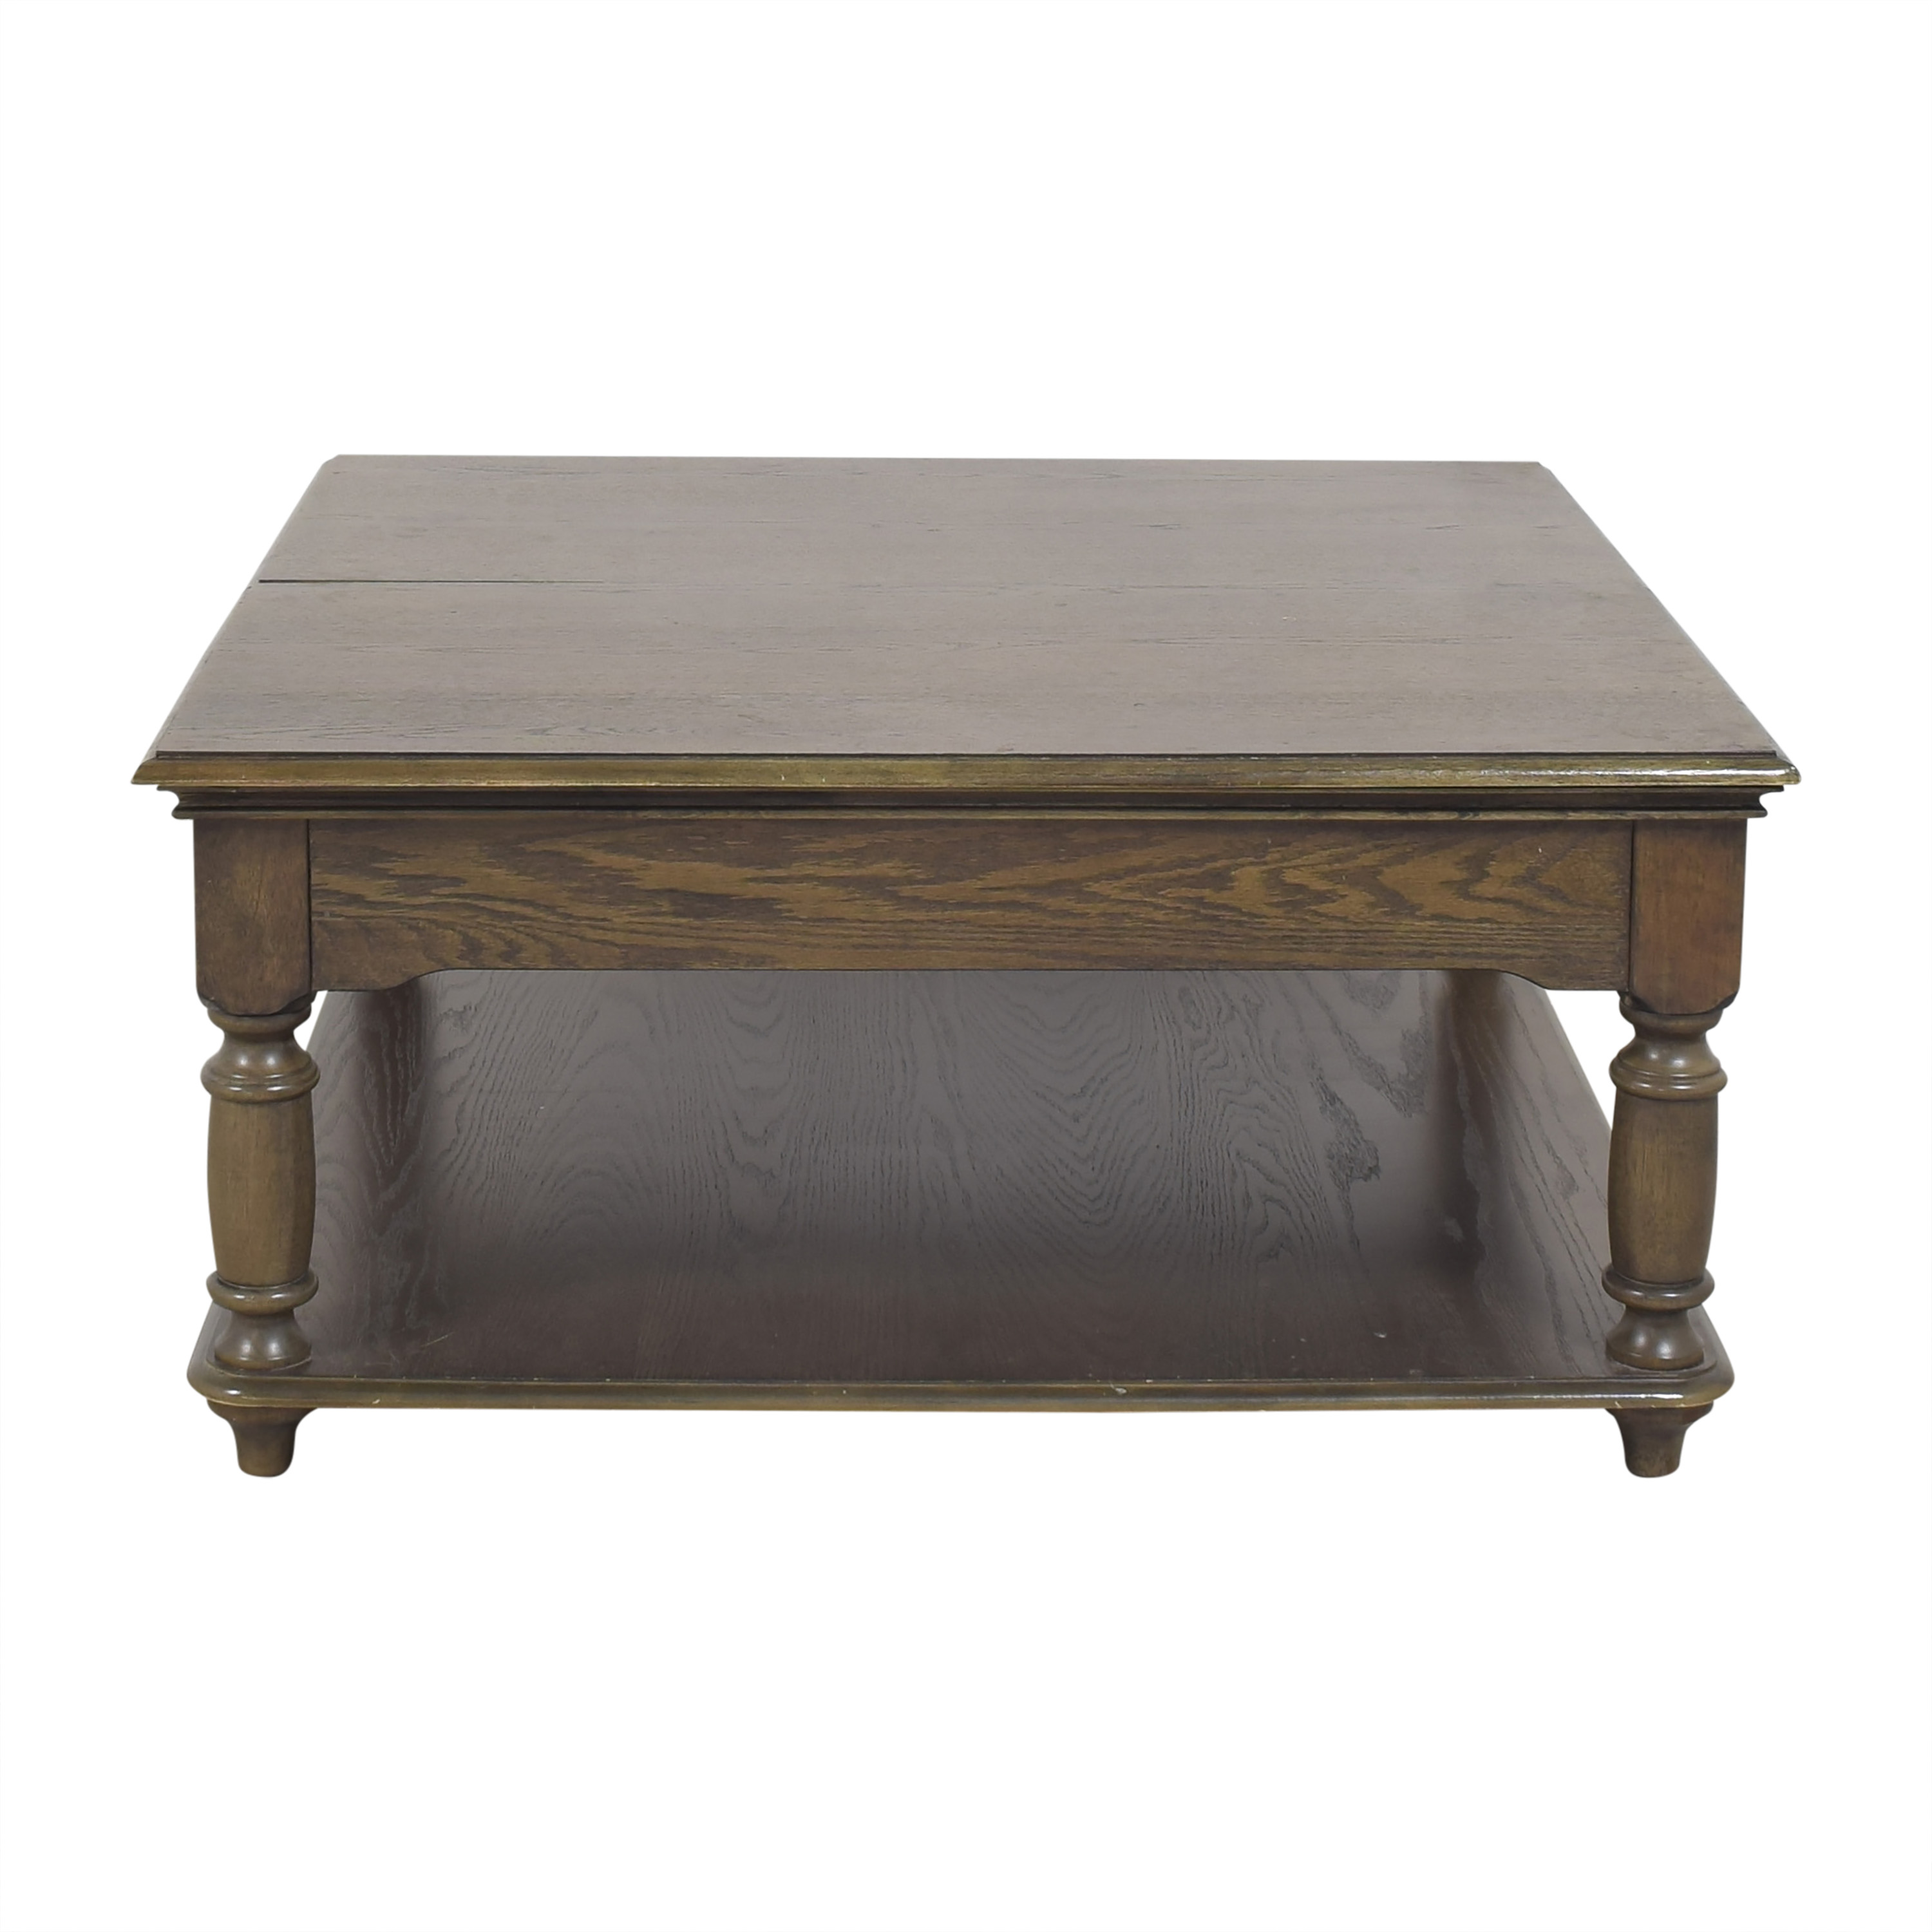 shop Riverside Furniture Riverside Furniture Square Lift-Top Coffee Table online